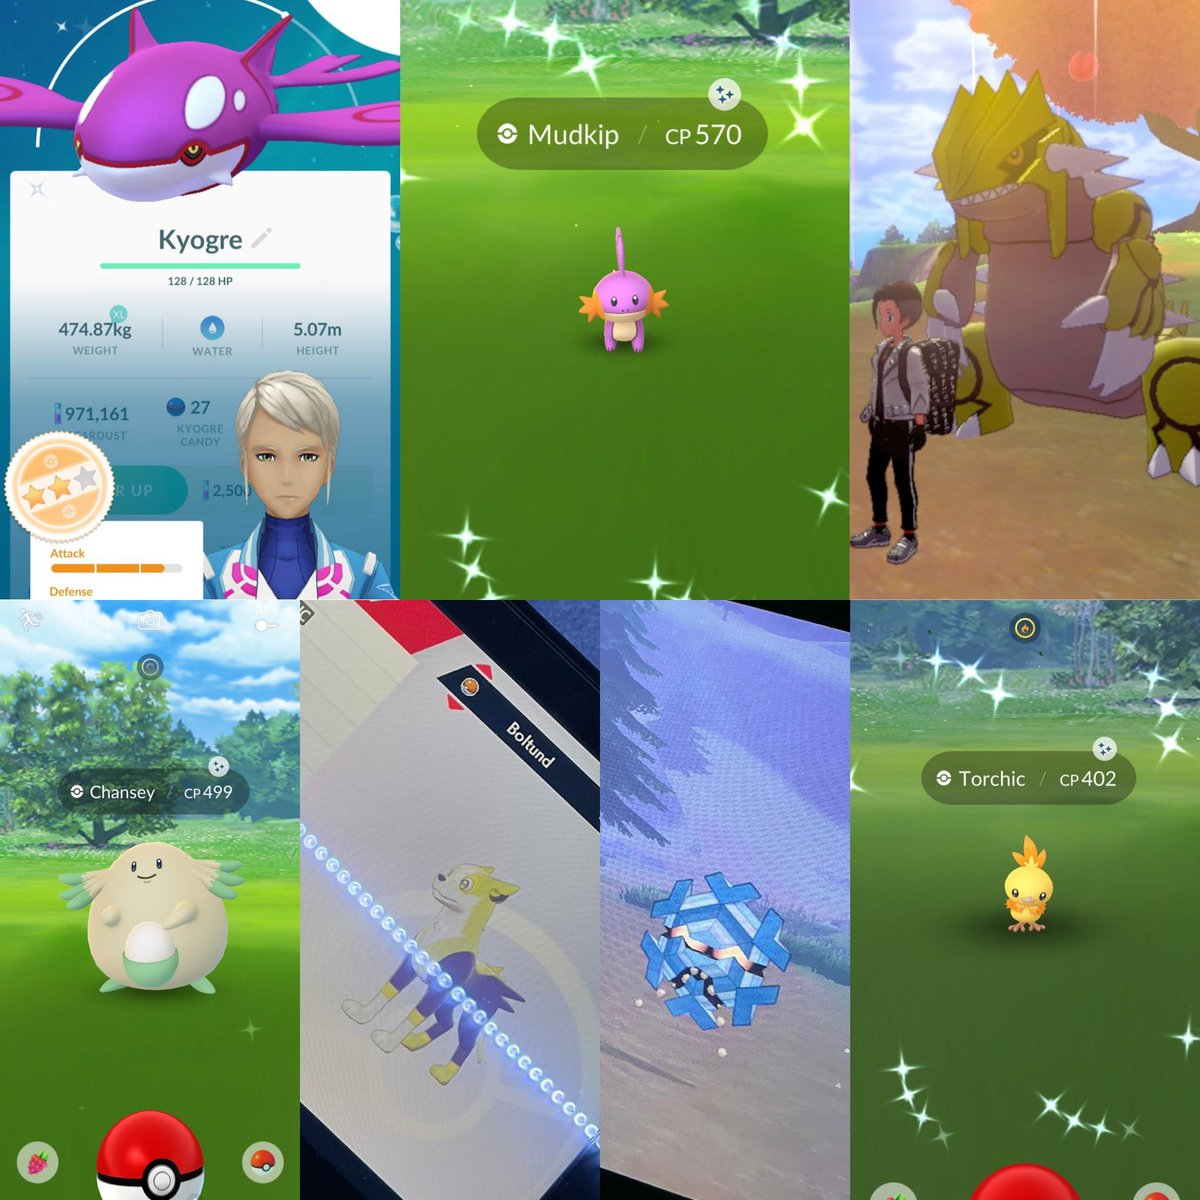 So having COVID-19 and staying at home... has summoned me these 7 shinies 😂 who says you can't catch shinies at home 😉 #pokemongo #PokemonSwordandShield #shinypokemon #pokemonshinies